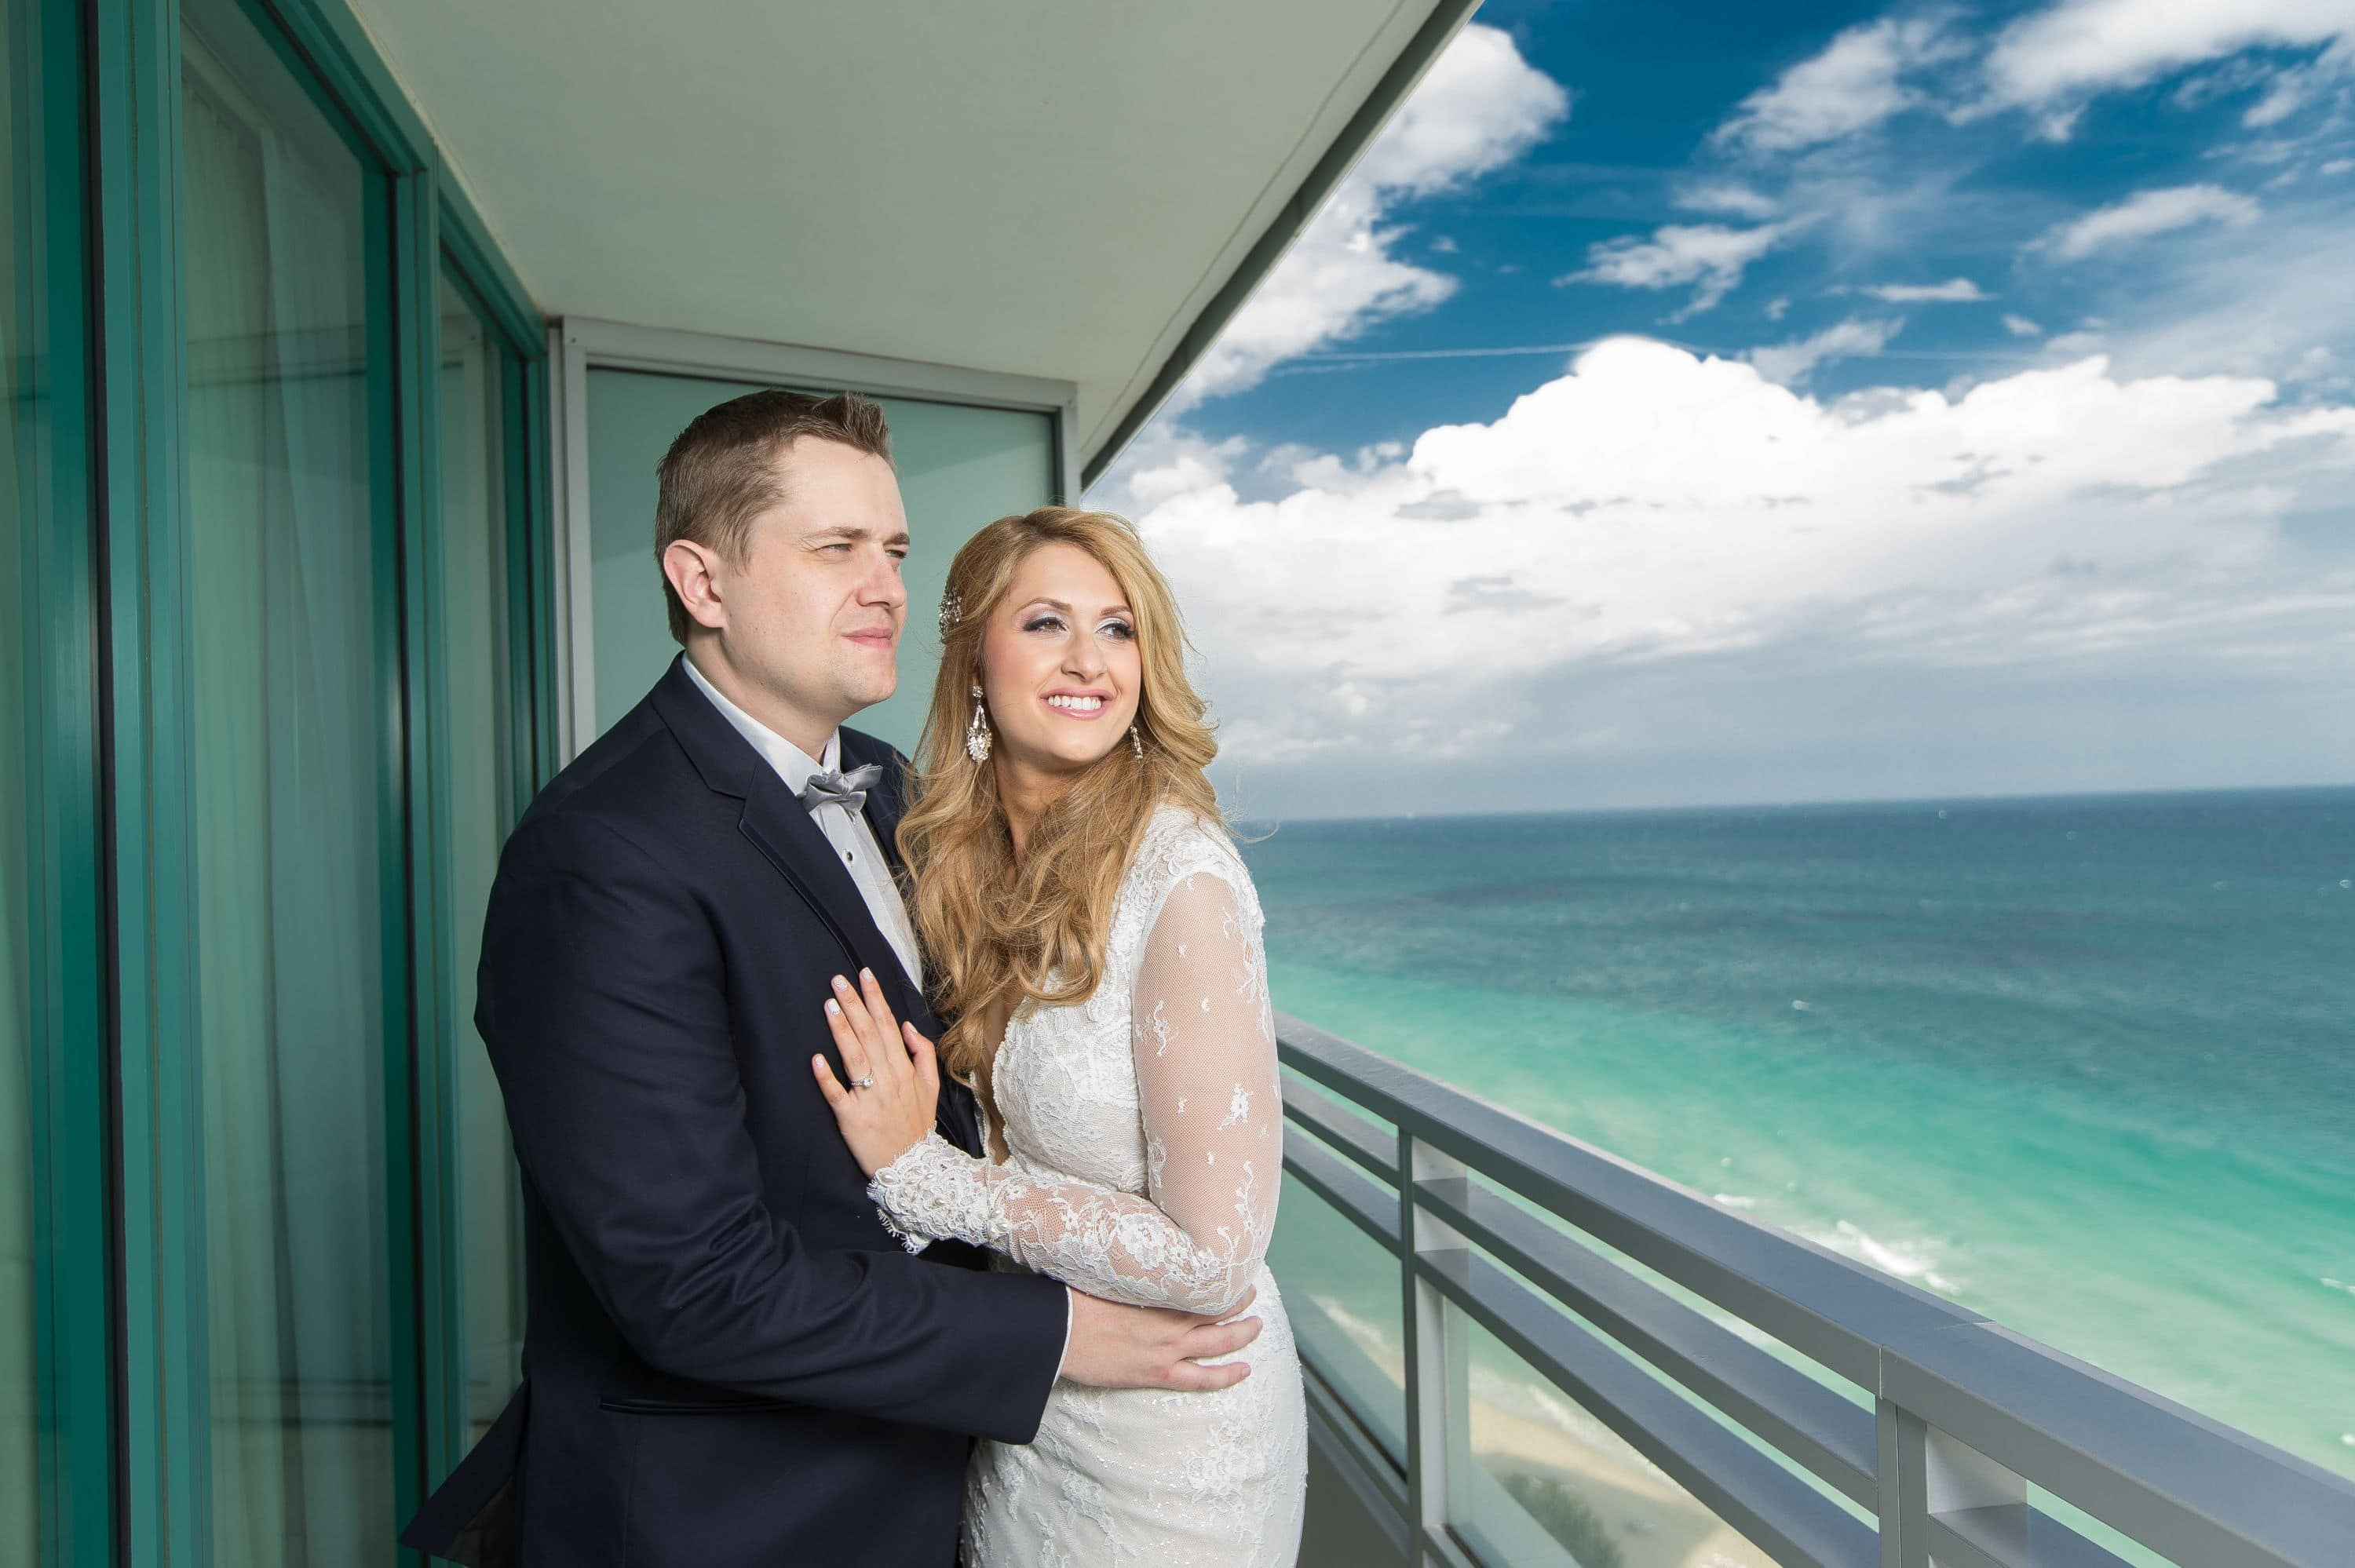 Bride and groom during a Diplomat Beach Resort Wedding take a moment to admire the view